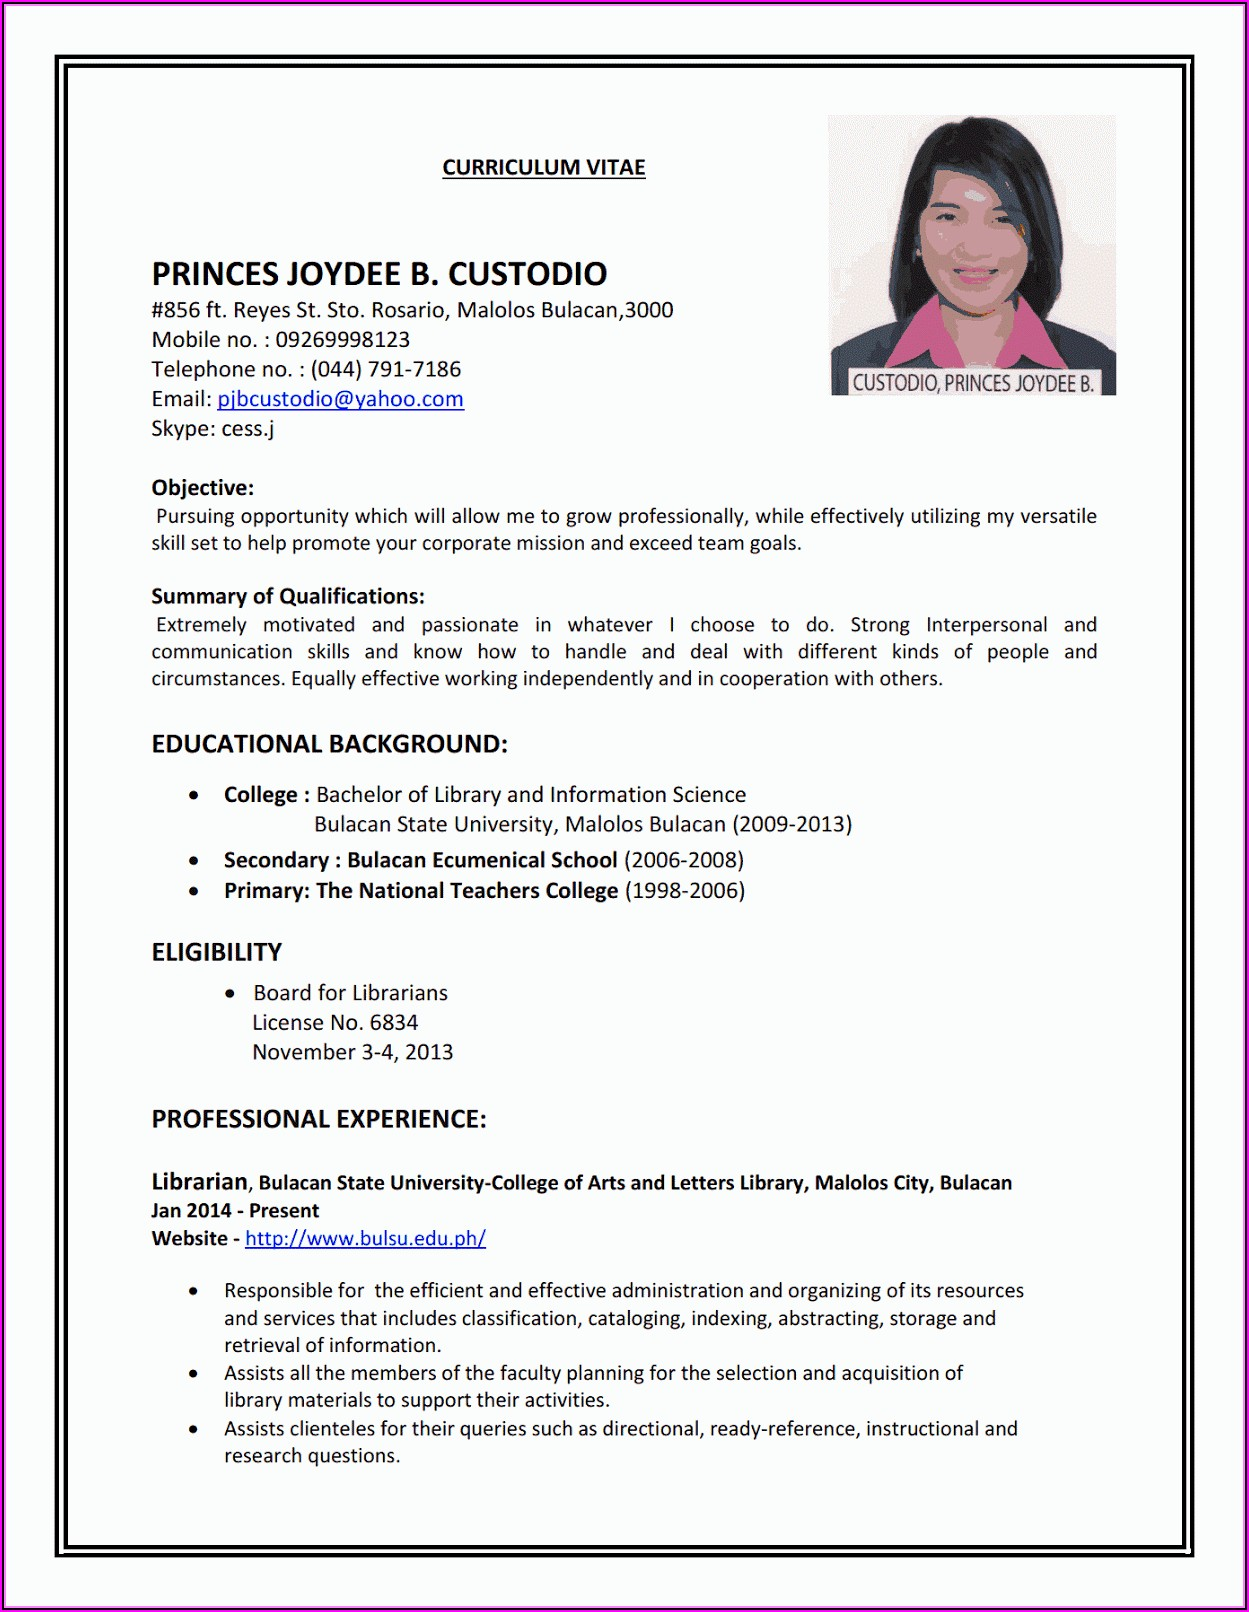 I Want To Make A Resume For Job